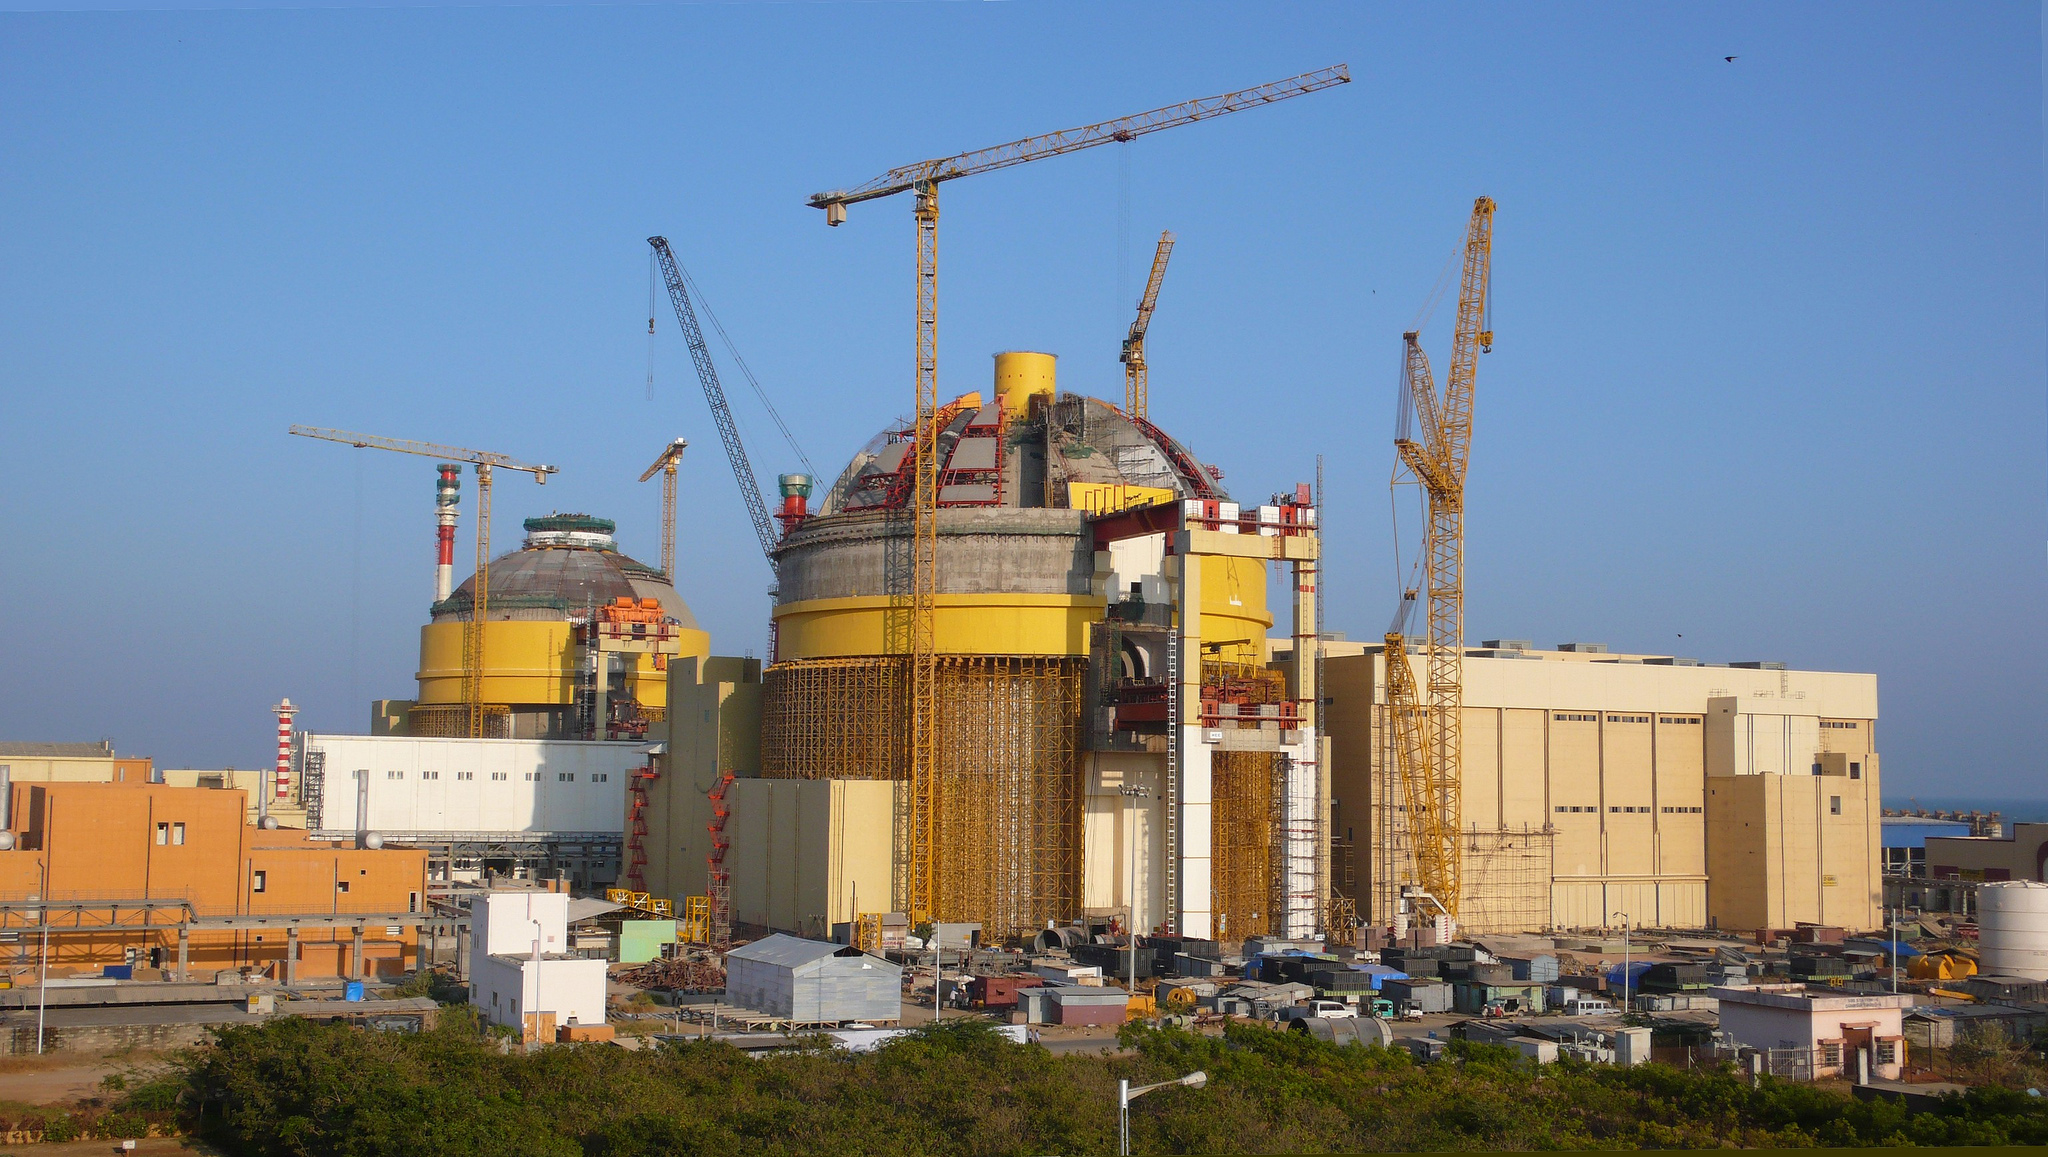 Construction site of the Koodankulam Nuclear Power Plant